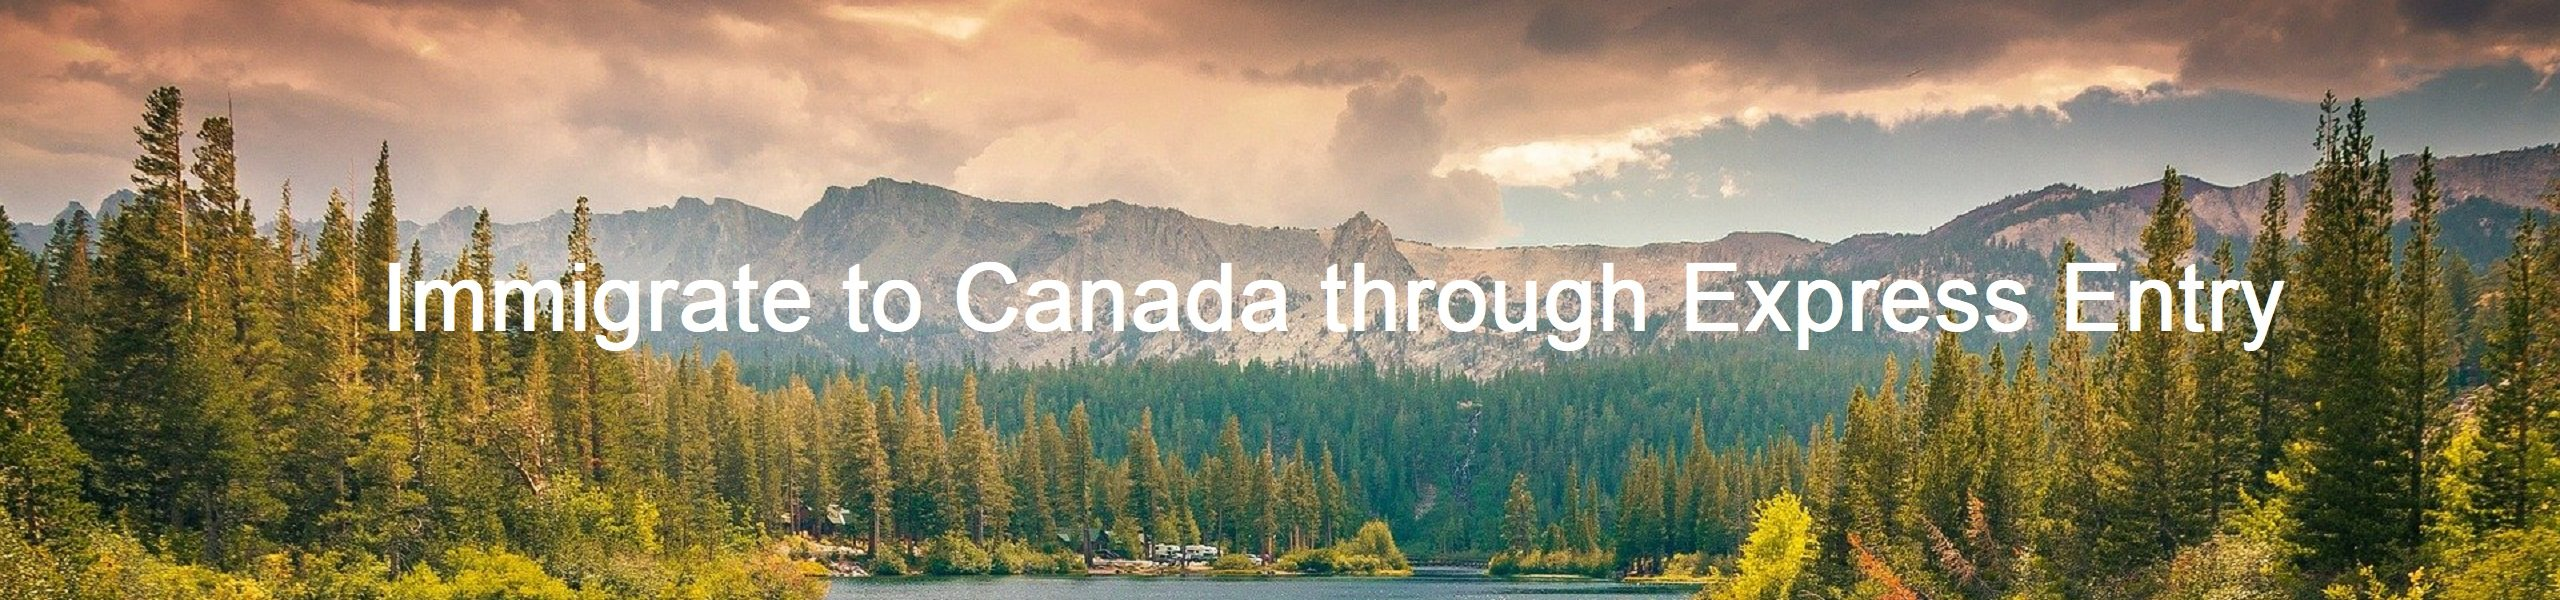 Immigrate to Canada Through Express Entry - Turningstone Immigration Consulting